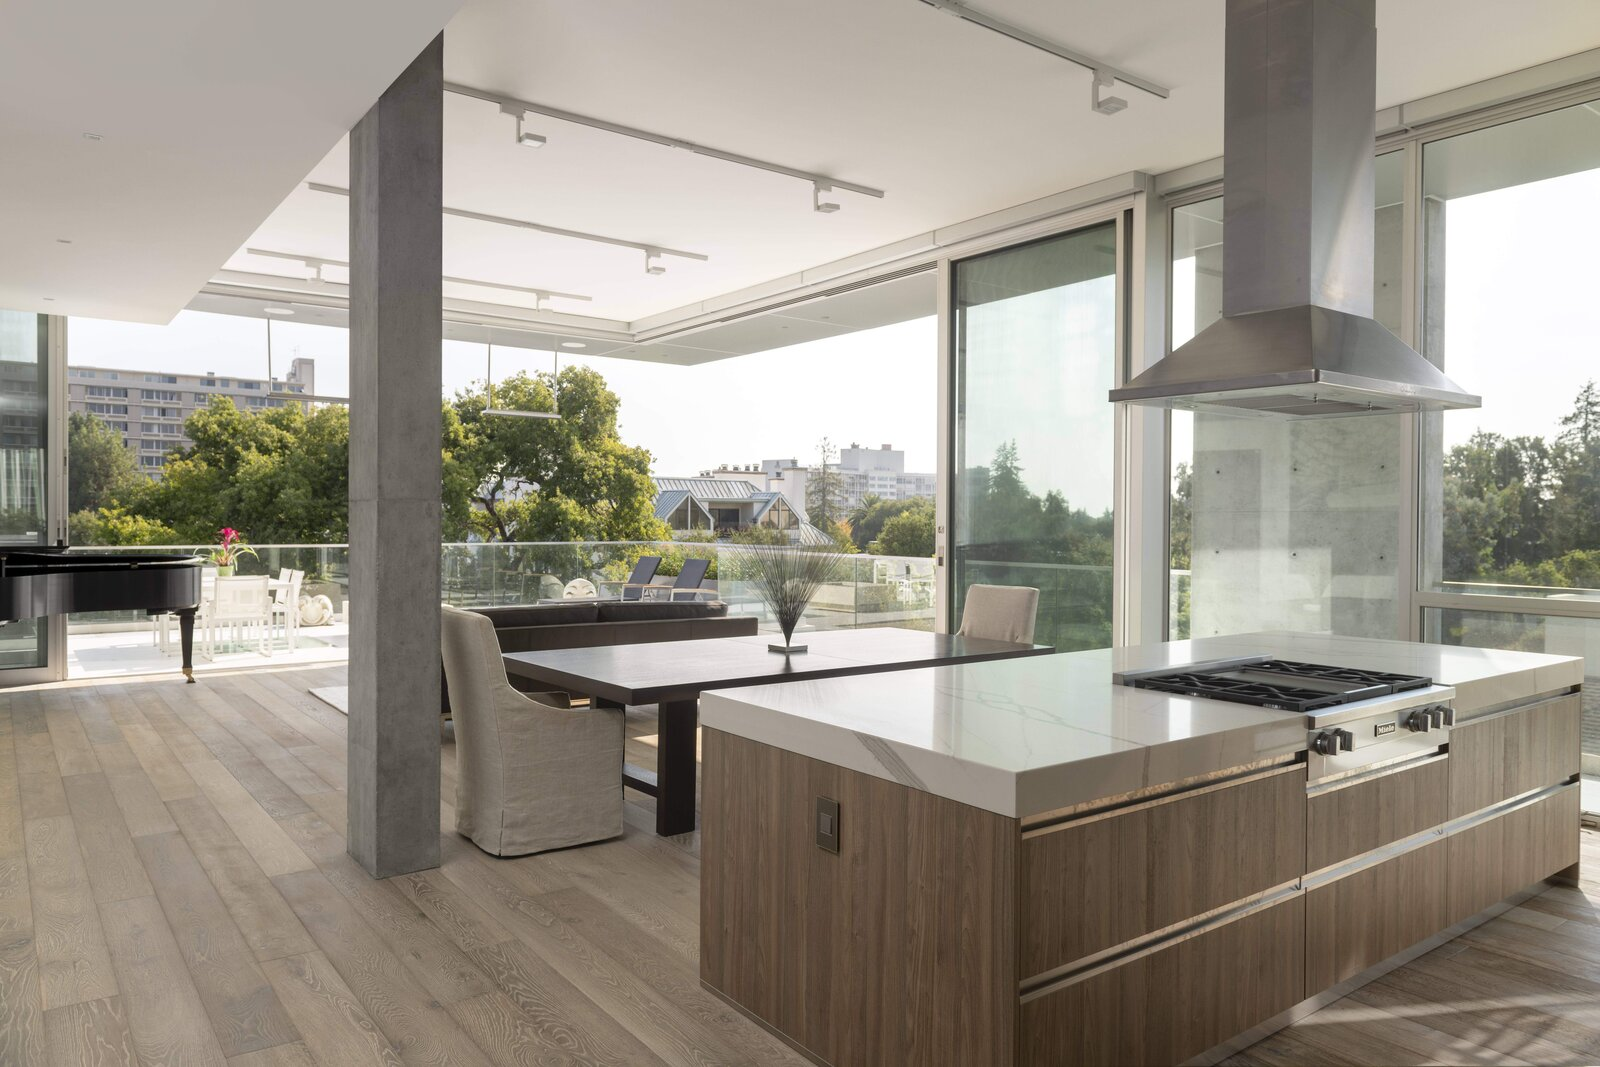 Inside, opening living spaces flow outdoors onto private decks.  Photo 4 of 7 in A Net-Zero Building in Silicon Valley Gracefully Encompasses Both Work and Play